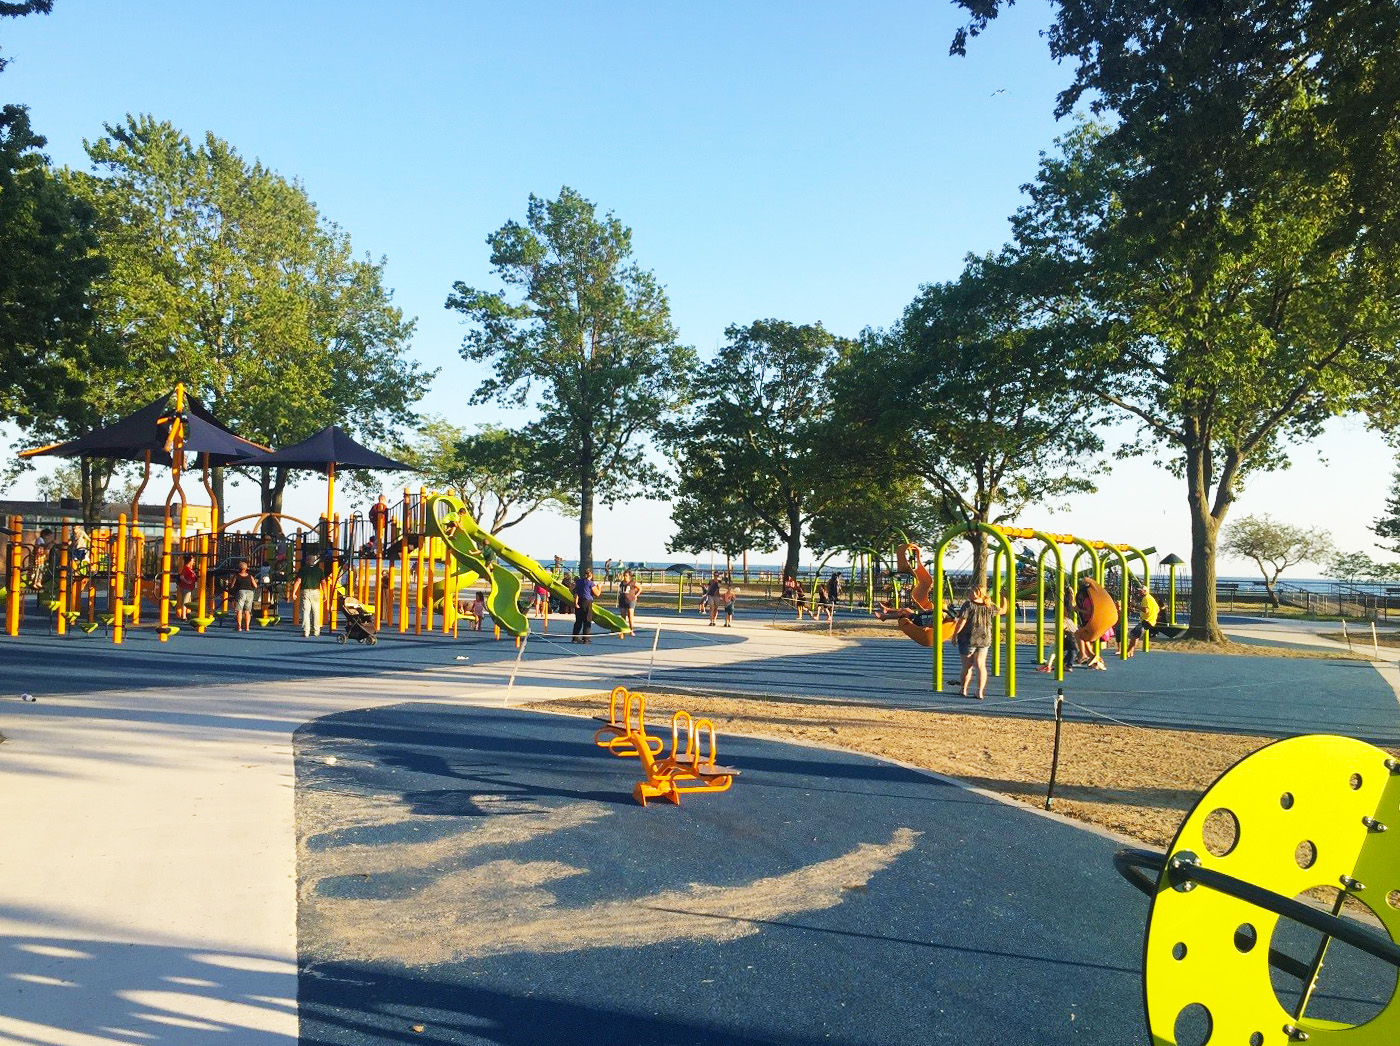 With Lake St. Clair in the background, the new playscape offers visual as well as physical enjoyment.